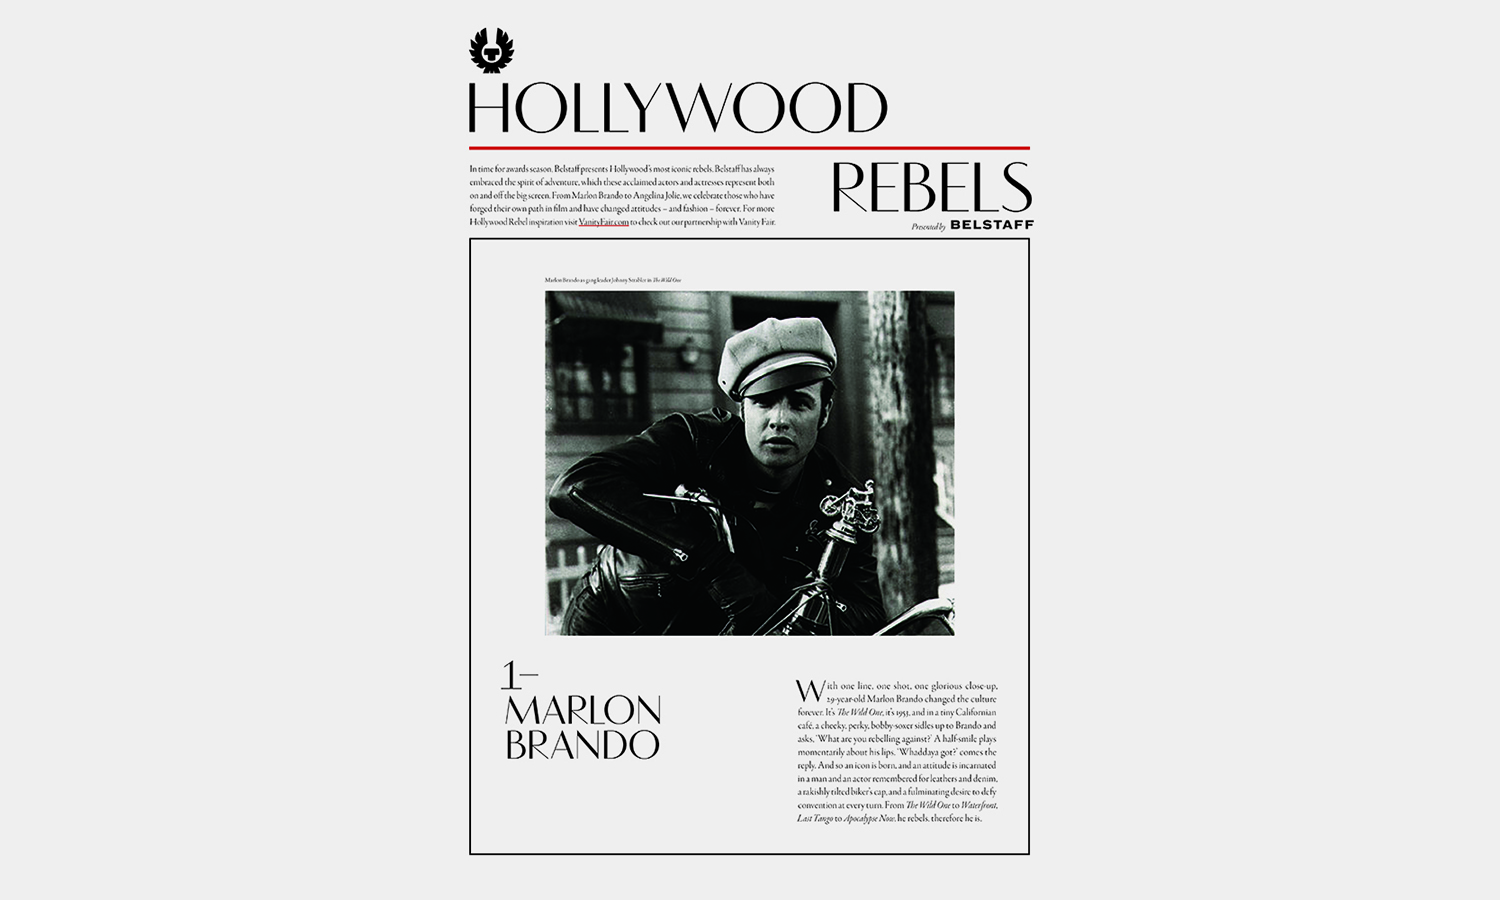 Belstaff-Hollywood Rebels-FEATURED-0